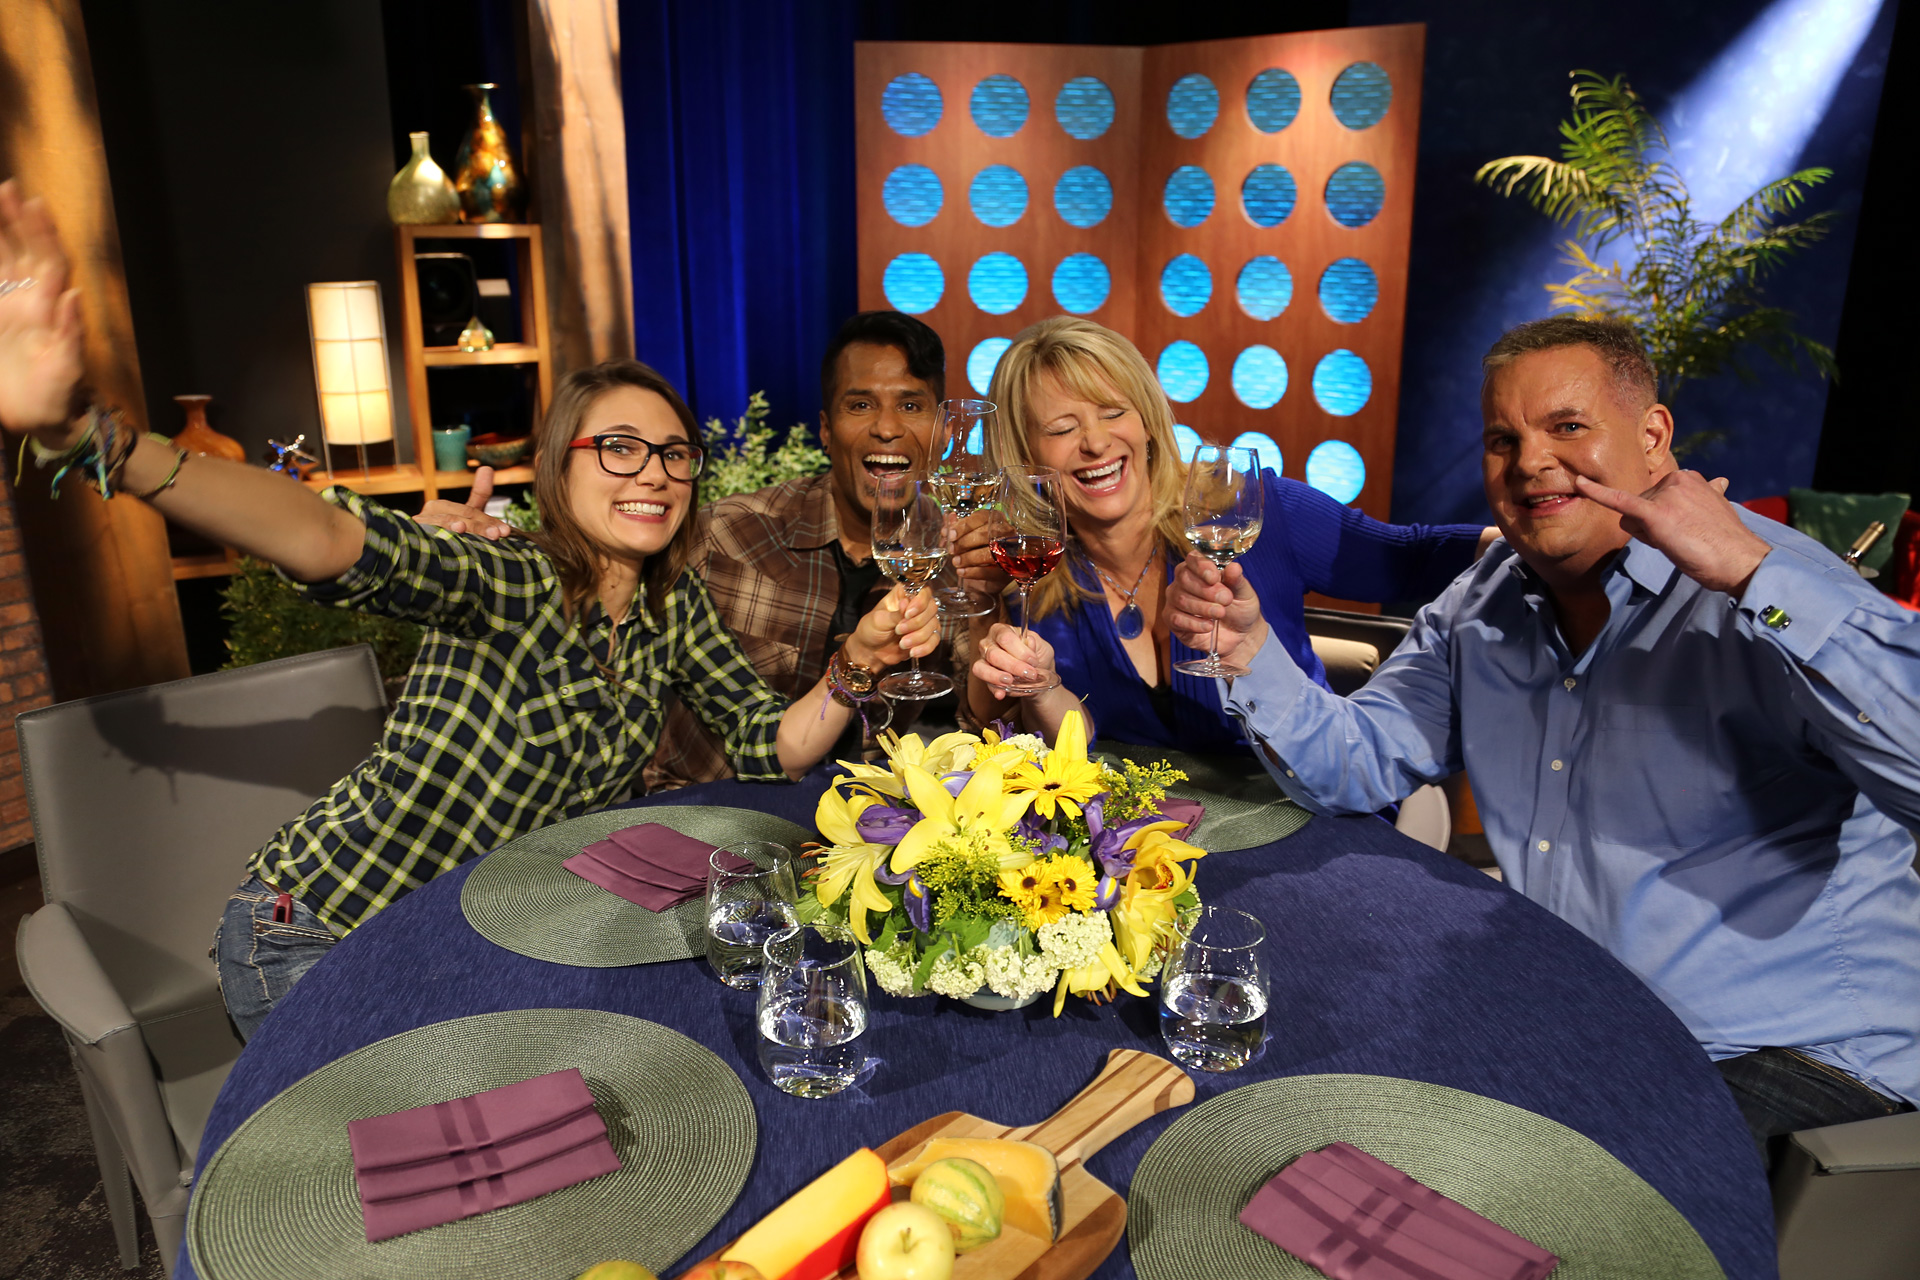 Host Leslie Sbrocco and guests having fun on the set of the episode 11 of season 14.